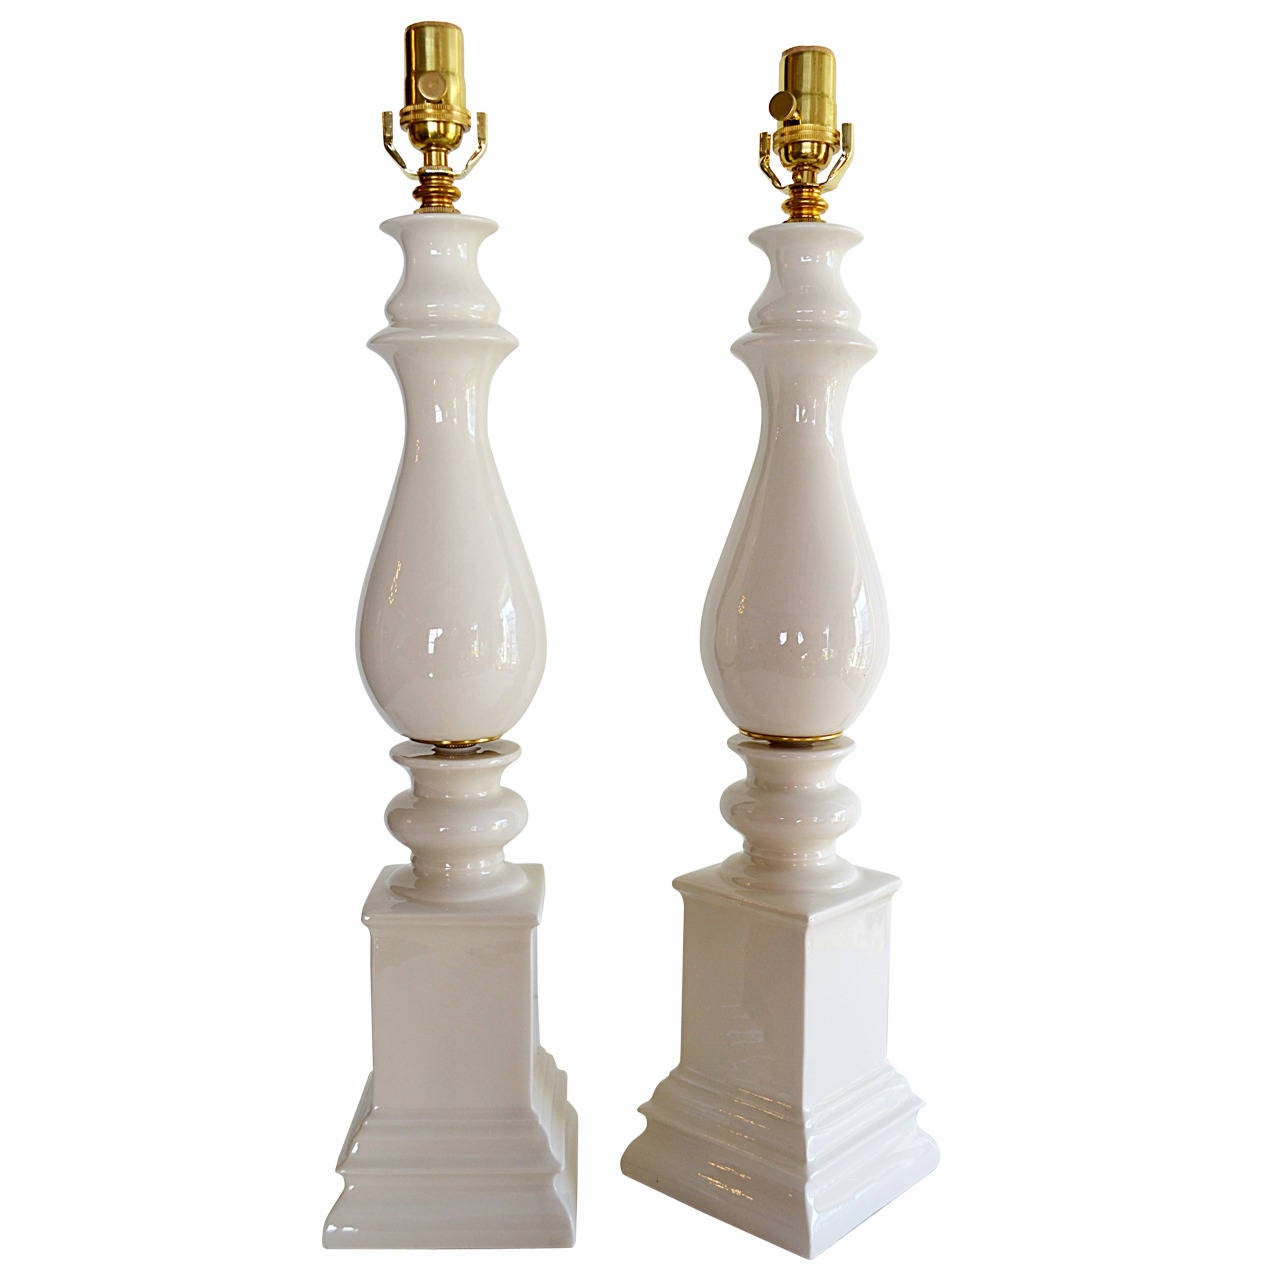 Pair of Blanc de Chine Baluster Form Table Lamps